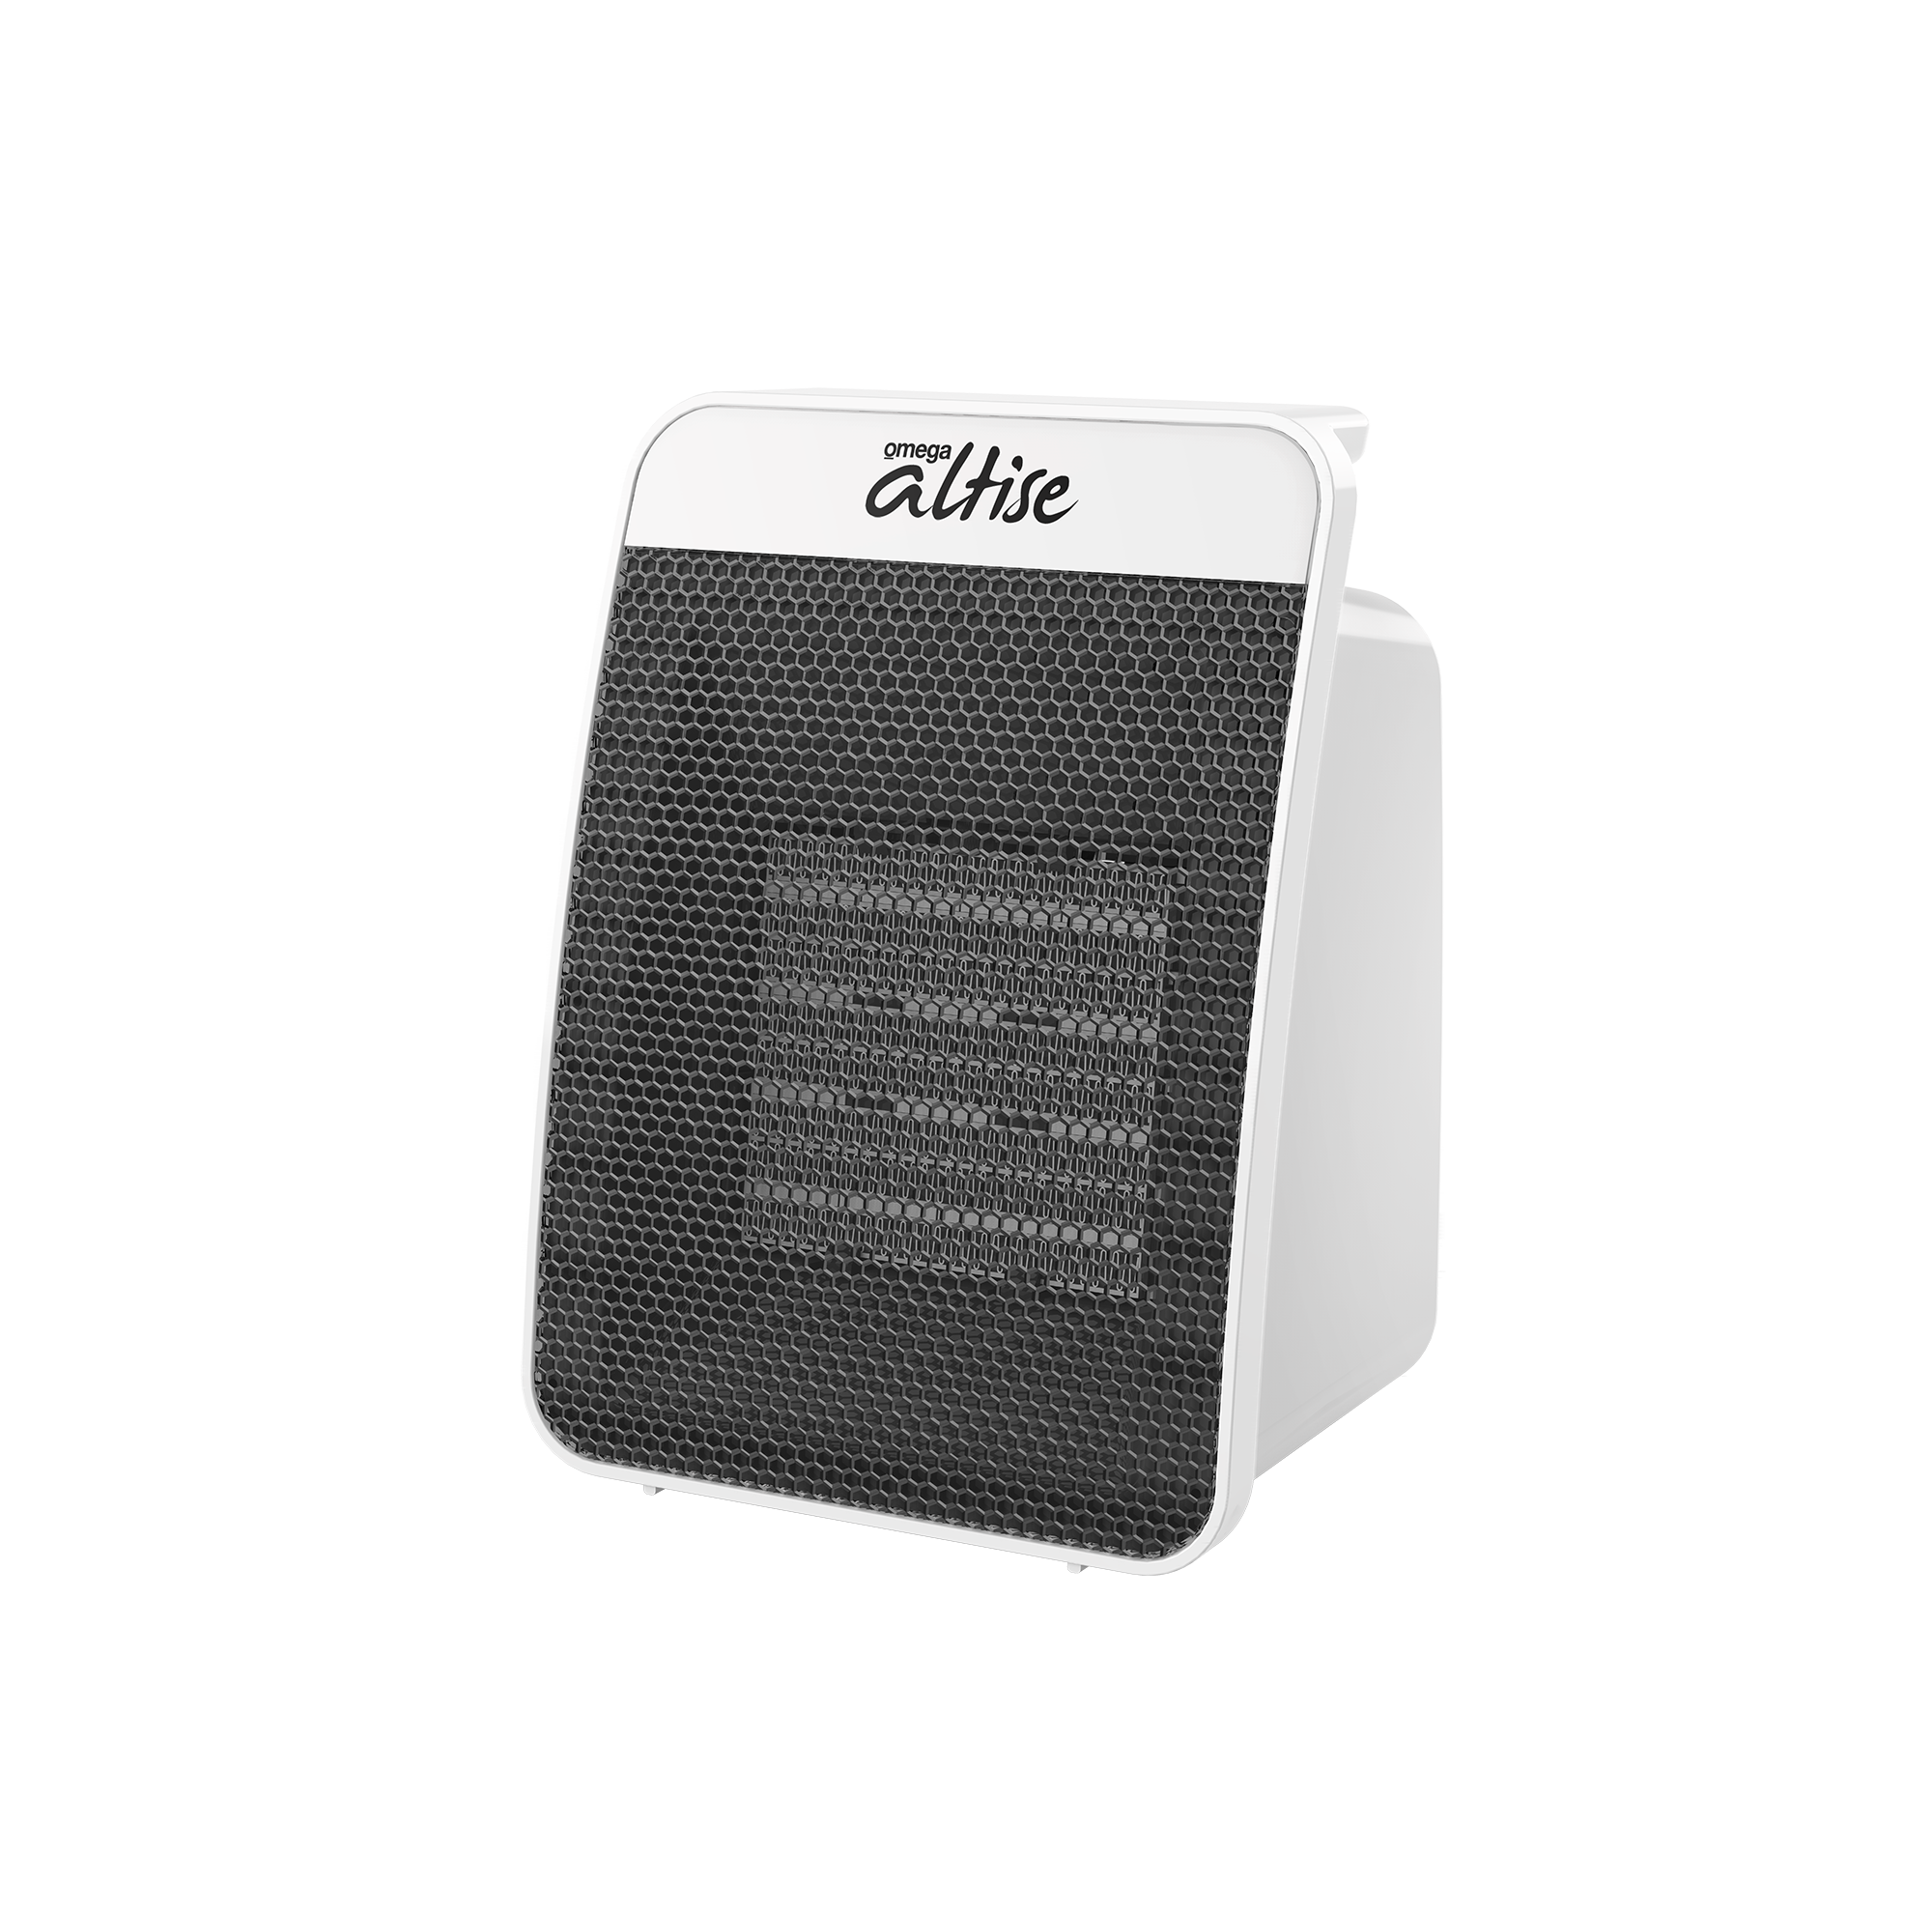 Omega Altise product 1500W Ceramic Heater - White OACH1500